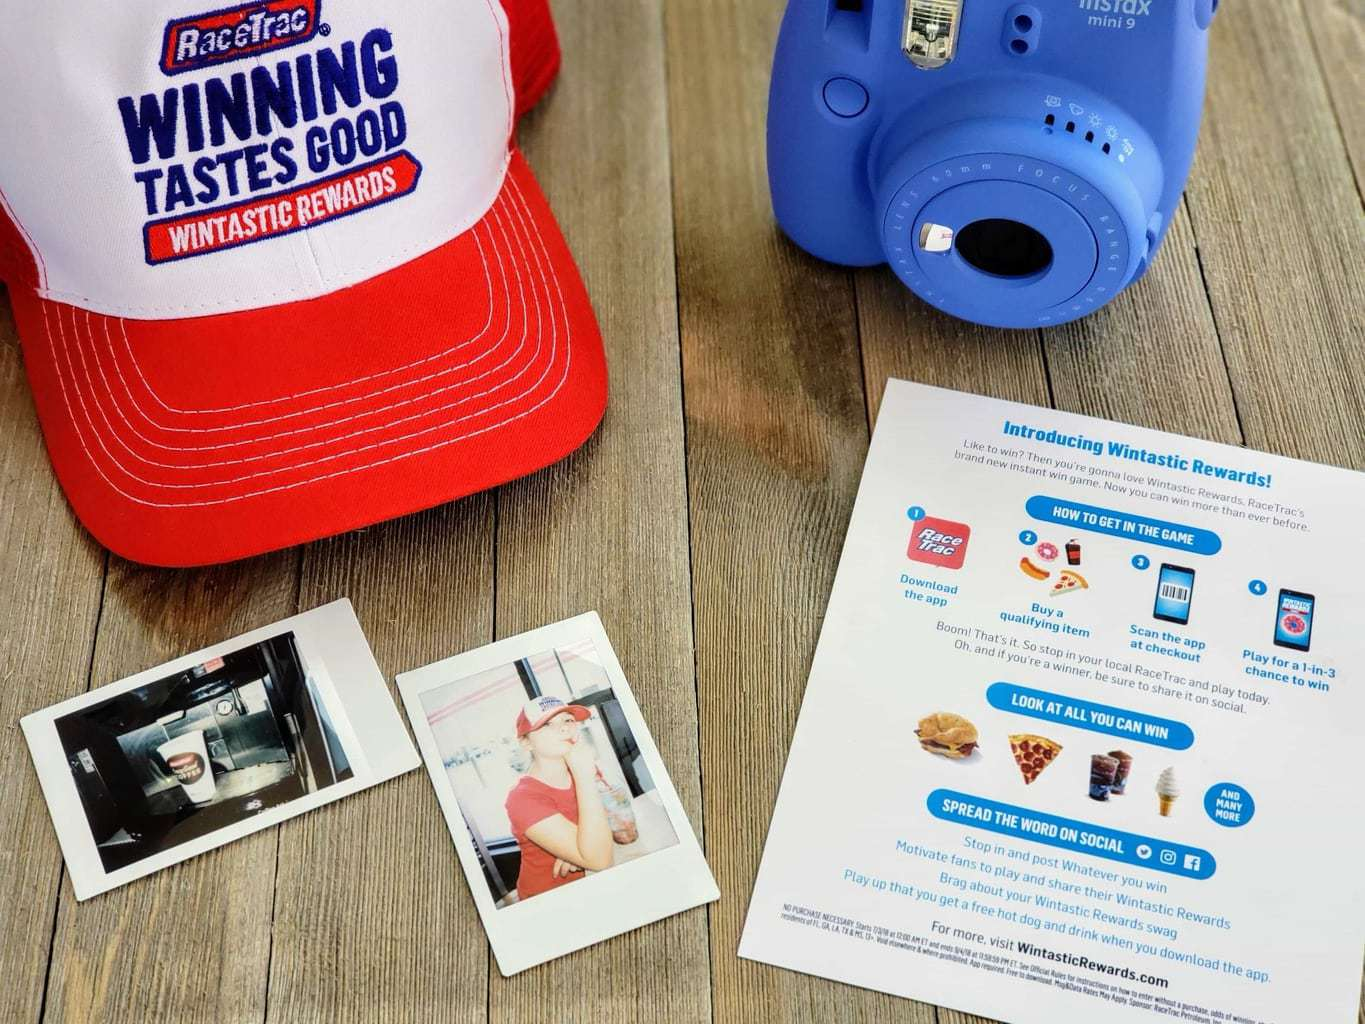 Ready for a Winning Summer? Download the RaceTrac Wintastic Rewards App